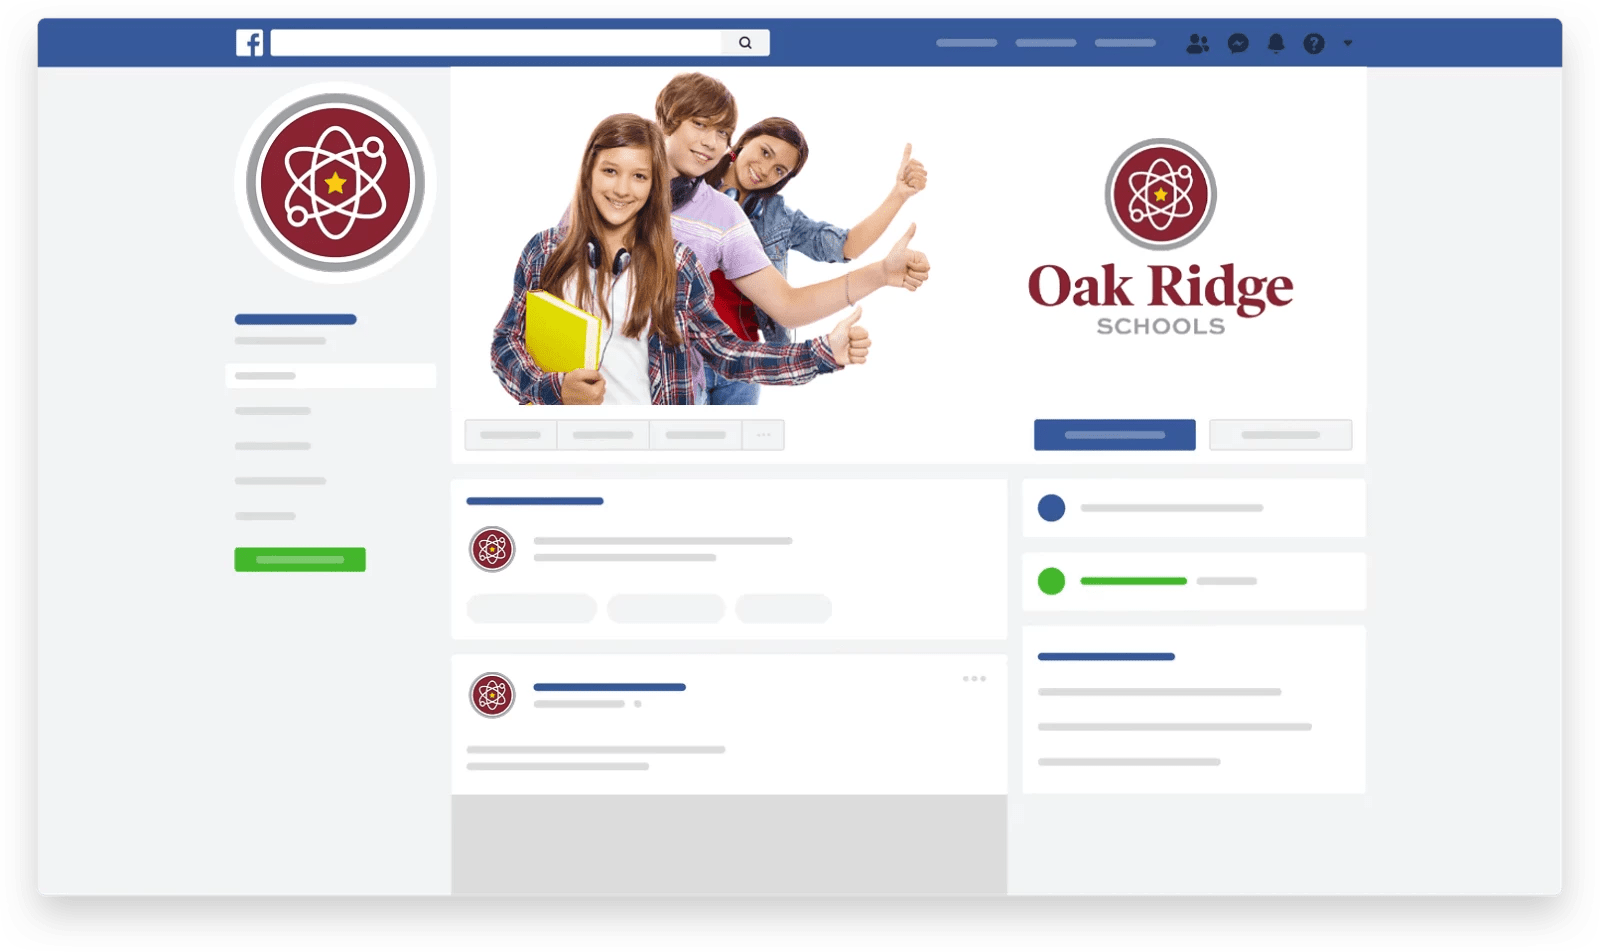 Oak Ridge Schools Facebook page mockup